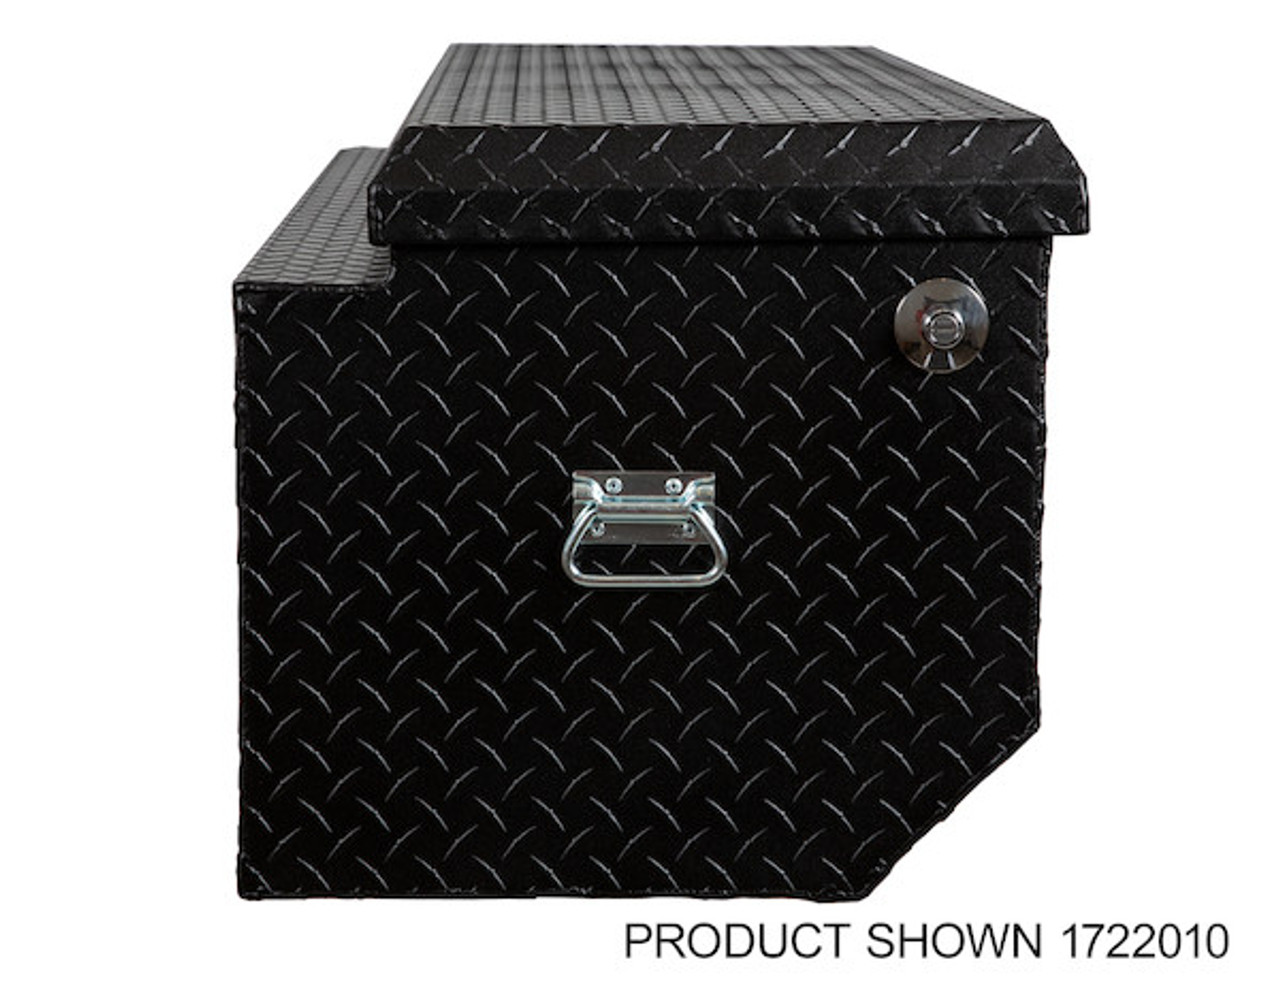 """1722010 BUYERS PRODUCTS TEXTURED MATTE BLACK DIAMOND TREAD ALUMINUM ALL-PURPOSE TOOLBOX WITH ANGLED BASE 19""""HX20""""DX47""""W Picture # 7"""